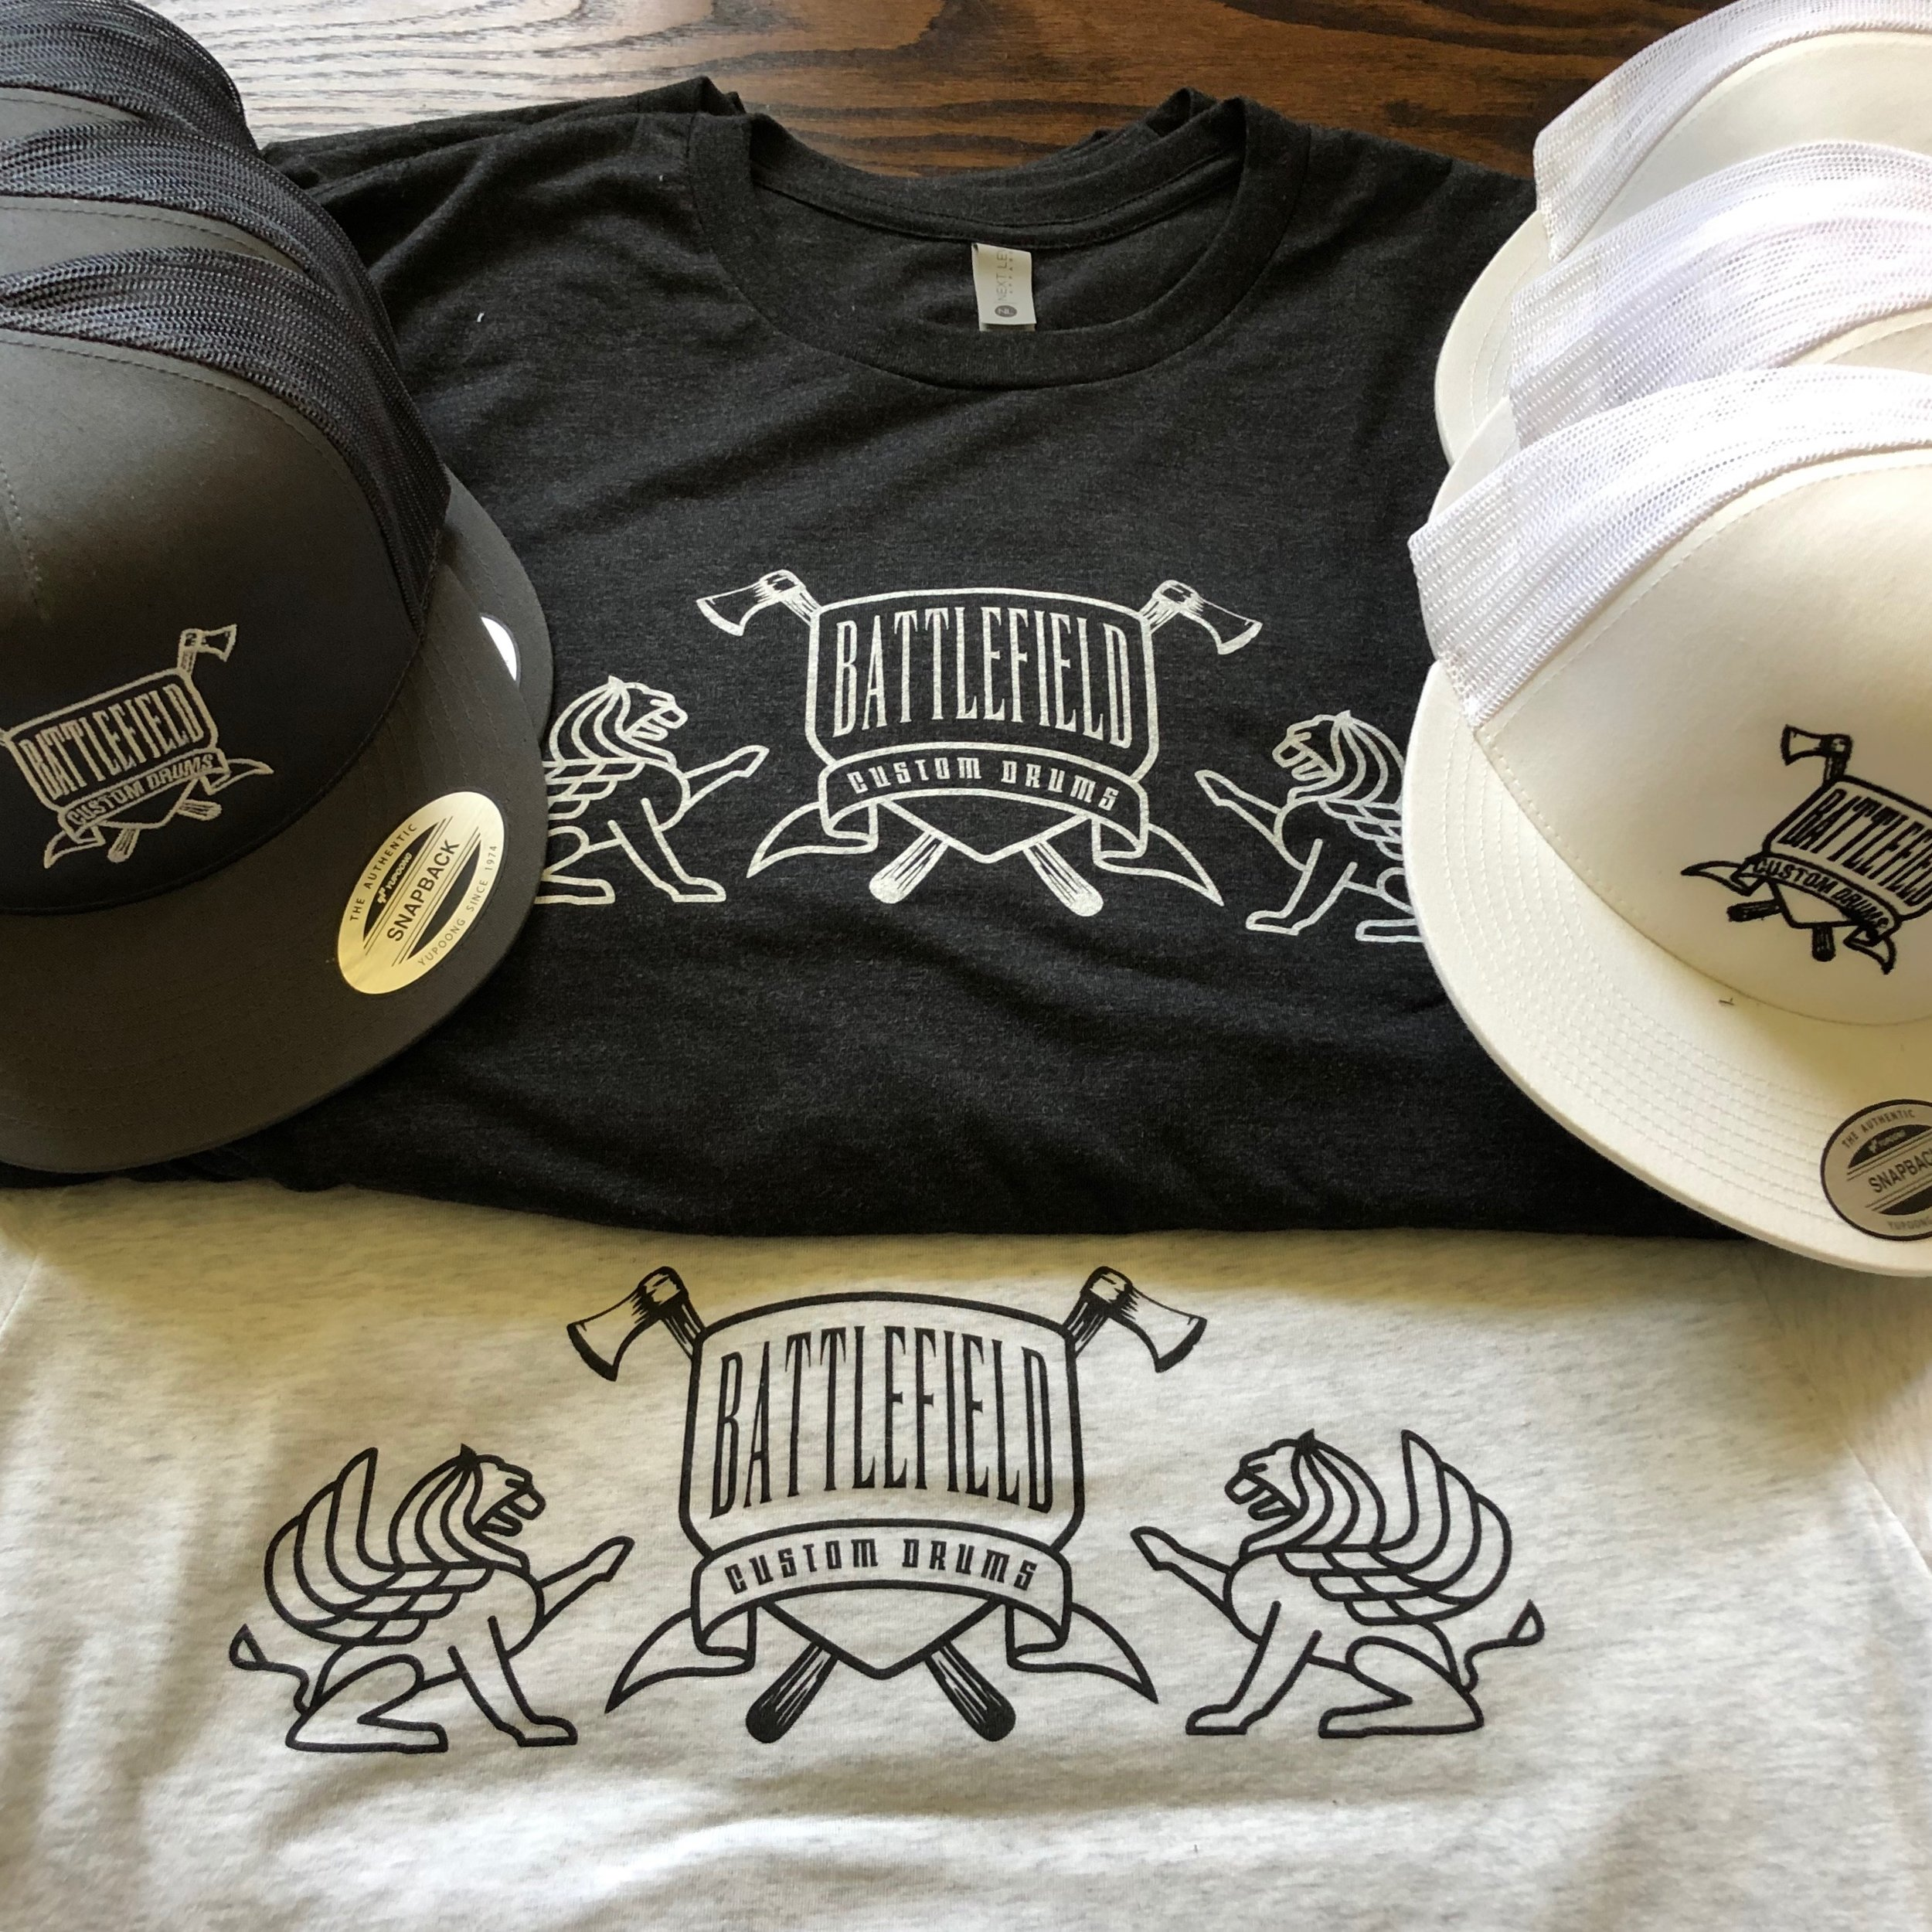 MERCH  Represent Battlefield! check out our shirts and hats.